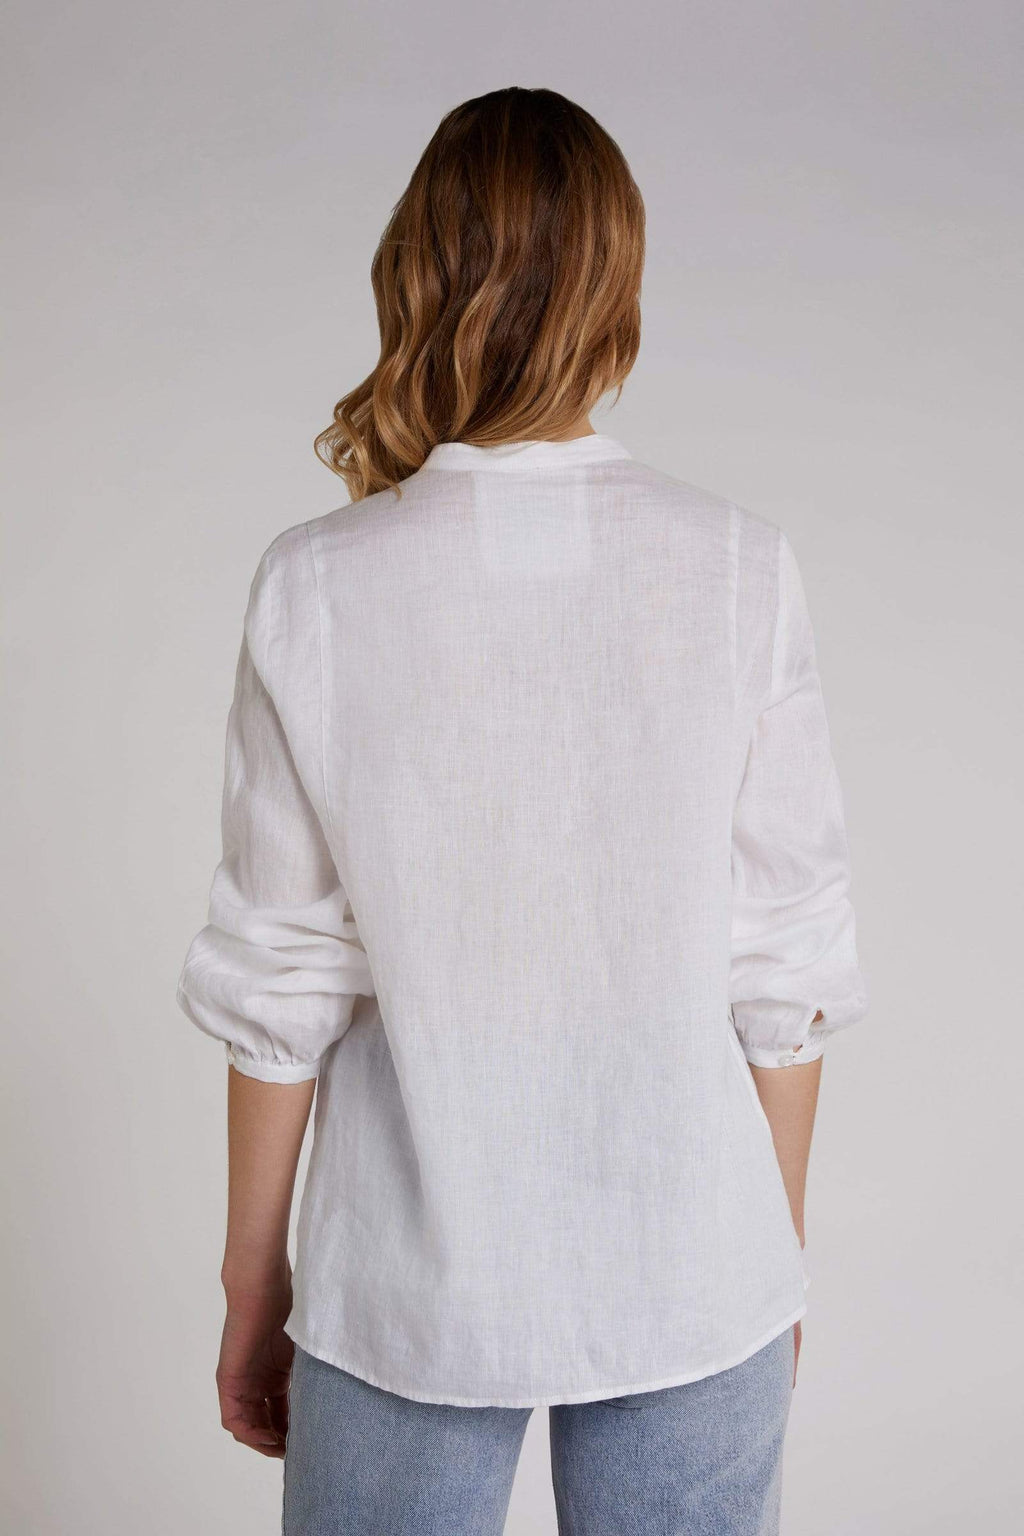 Oui Tops Oui Off White Linen Blouse 0068651 izzi-of-baslow